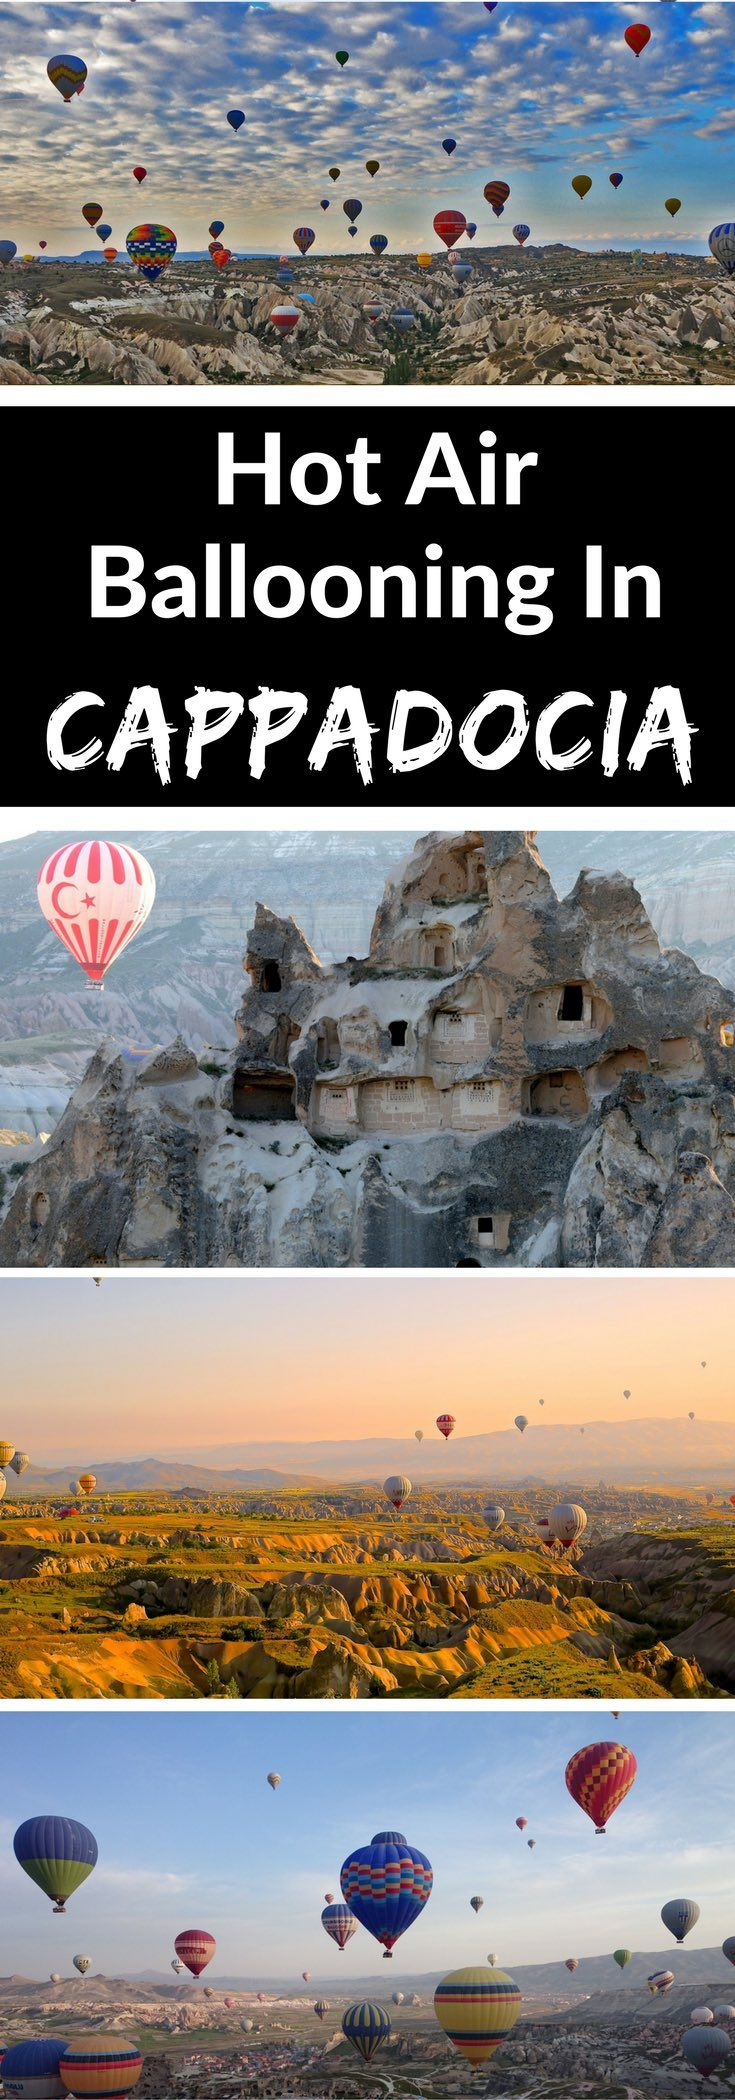 Hot Air Ballooning In Cappadocia. Hot air ballooning in Cappadocia is top of many people's bucket lists – and it's not hard to see why!